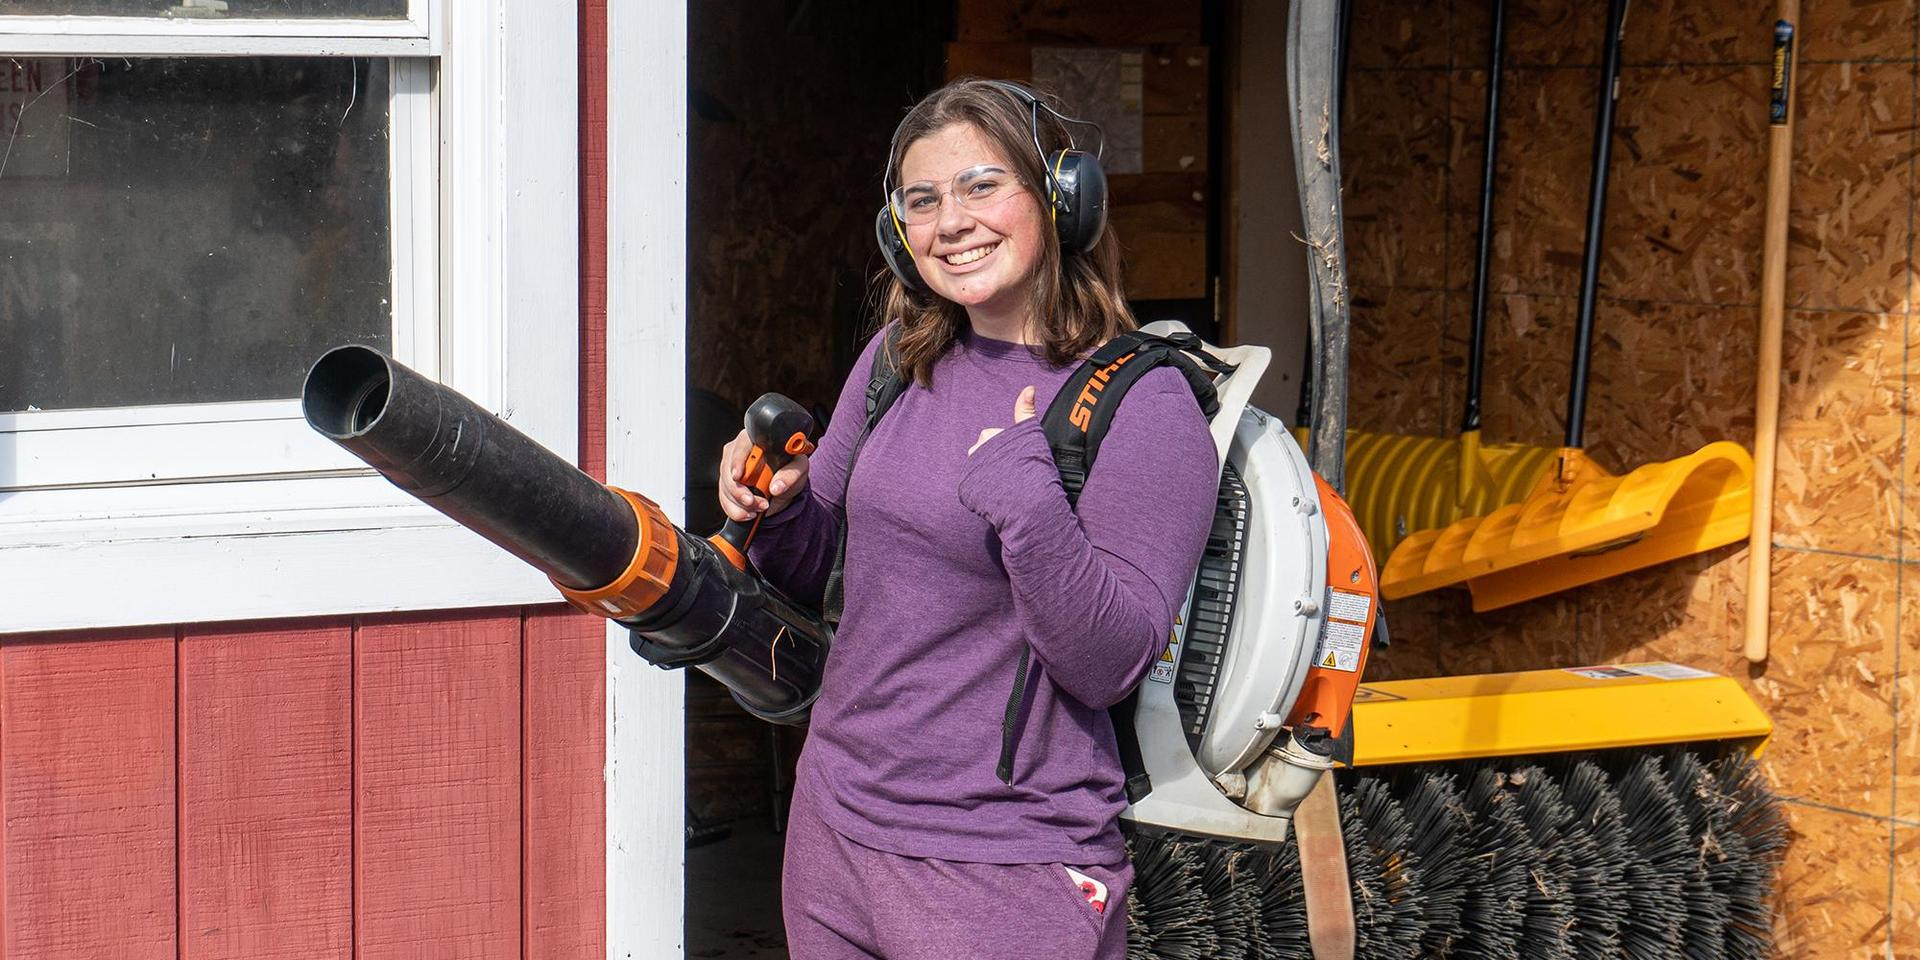 A student with a leaf blower and safety equipment prepares to get to work on Community Service Day.